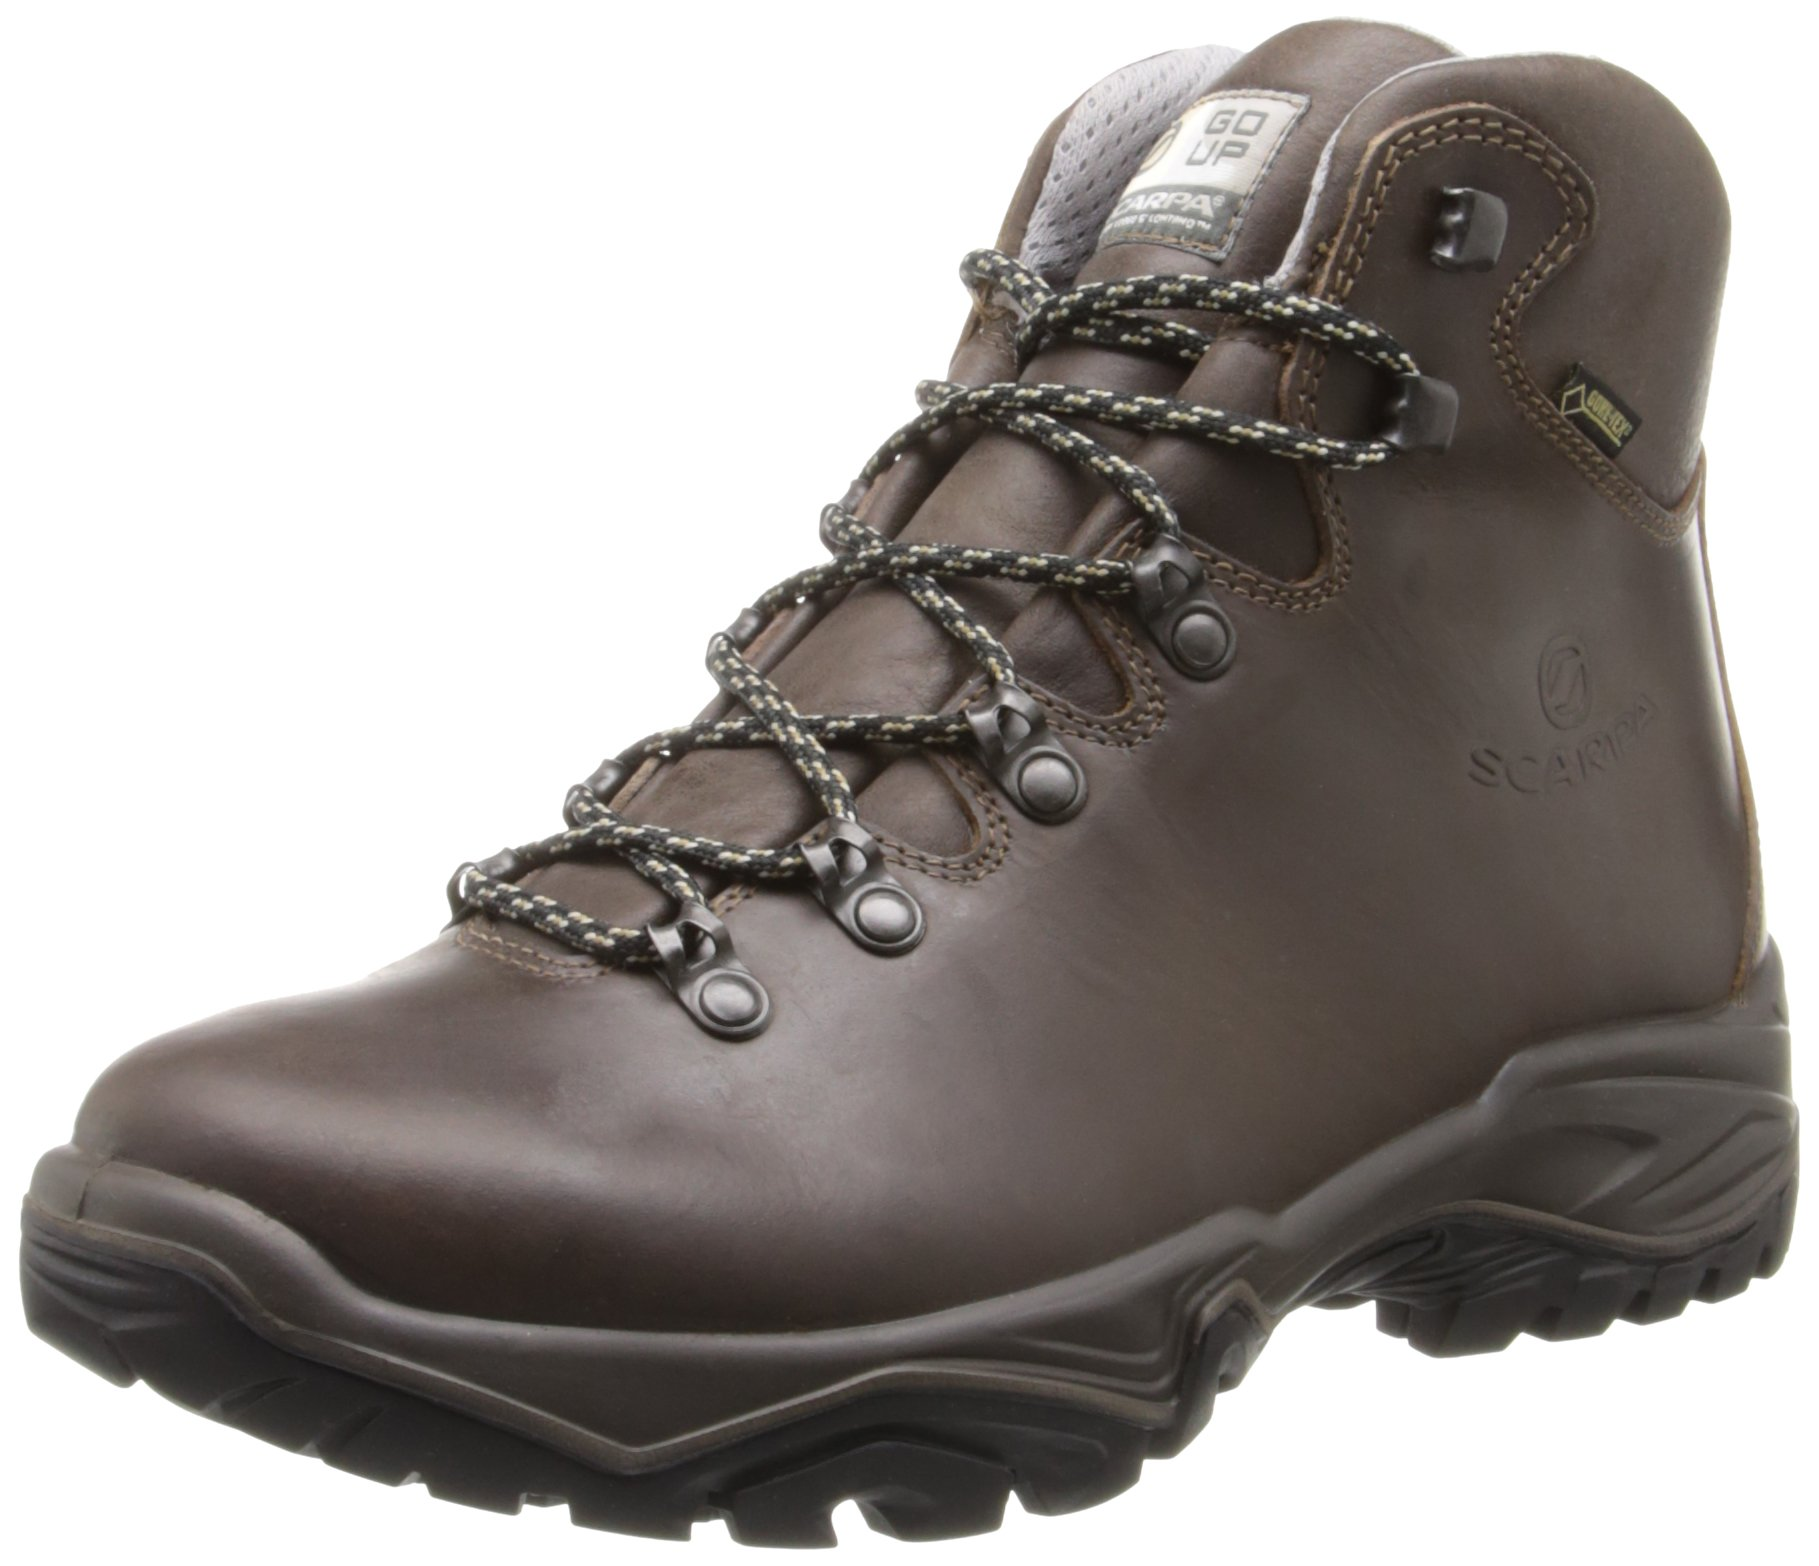 Scarpa Womens Women's Terra GTX Hiking Boot,Brown,40 EU/8.5 M US